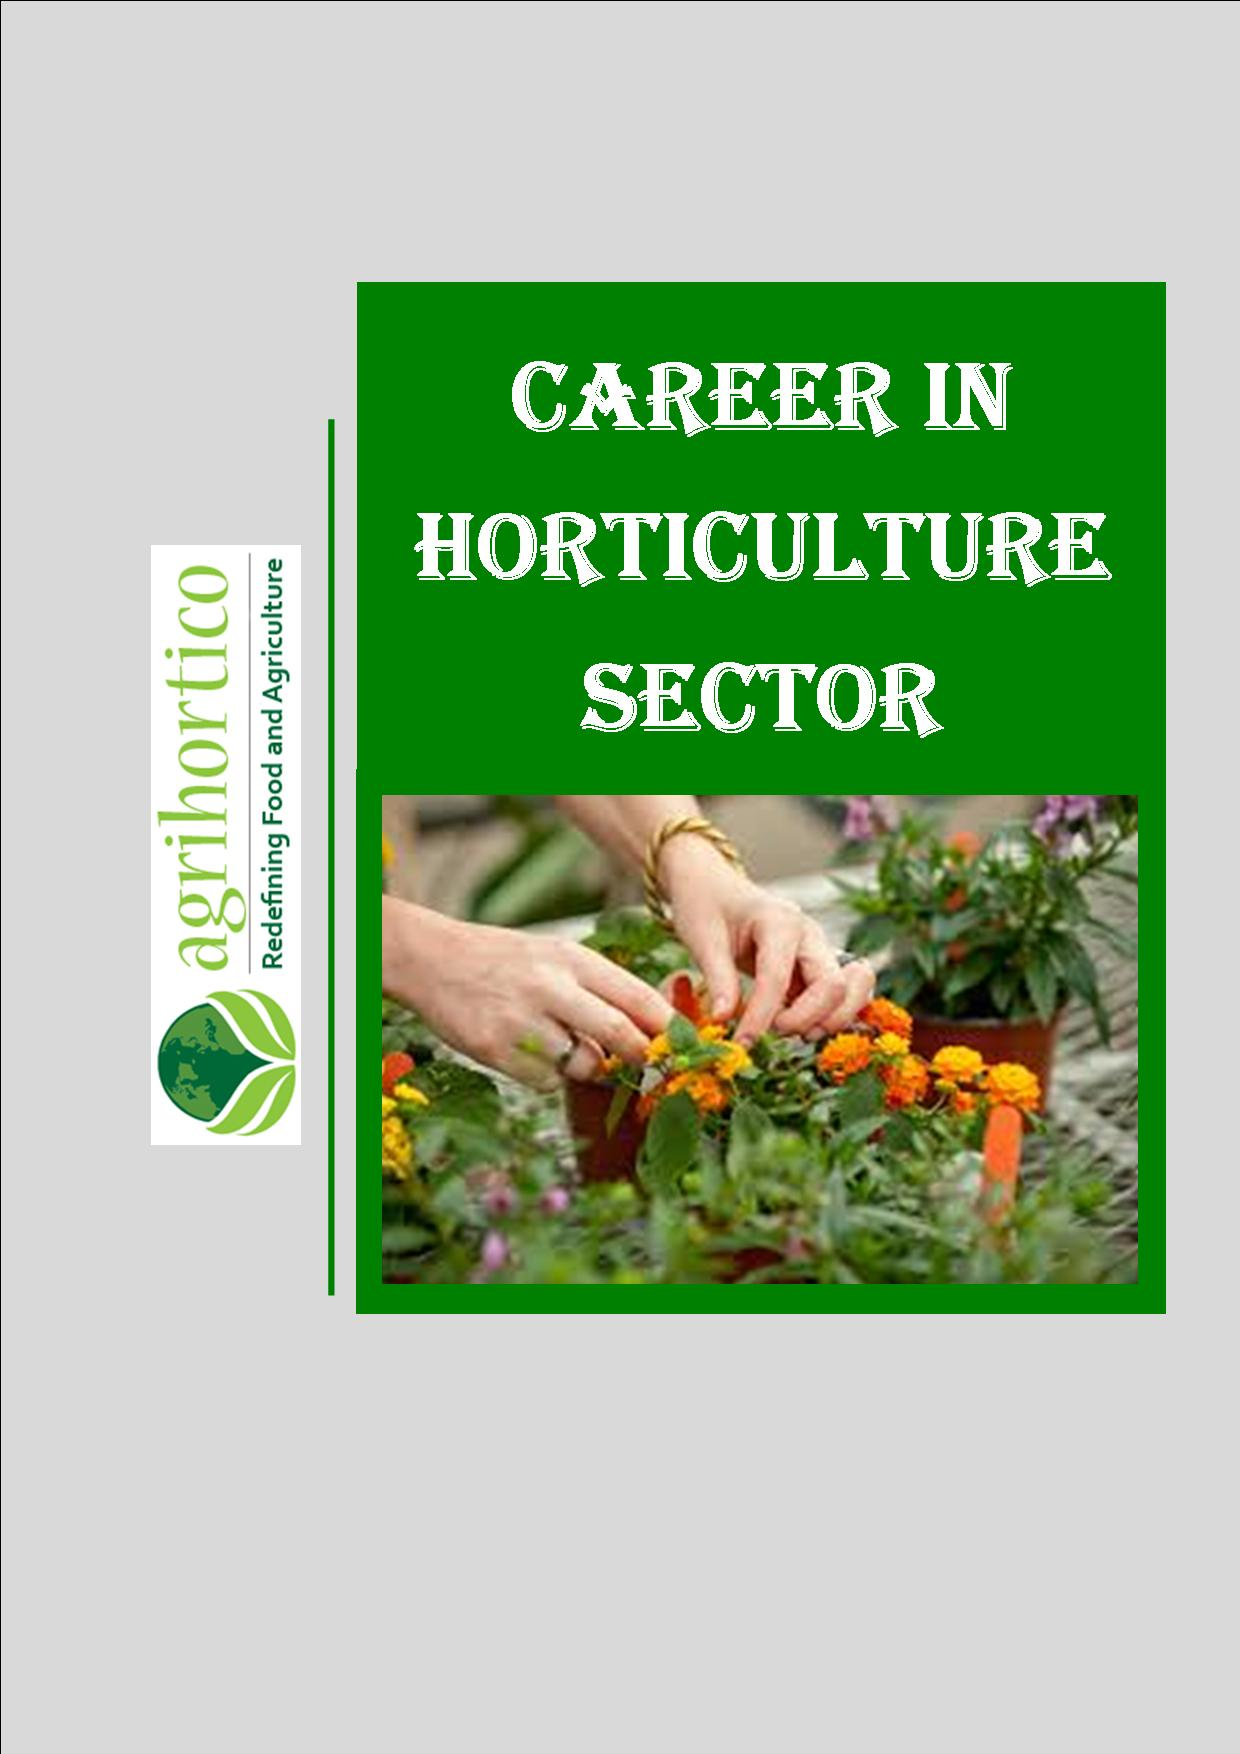 career-in-horticulture-sector